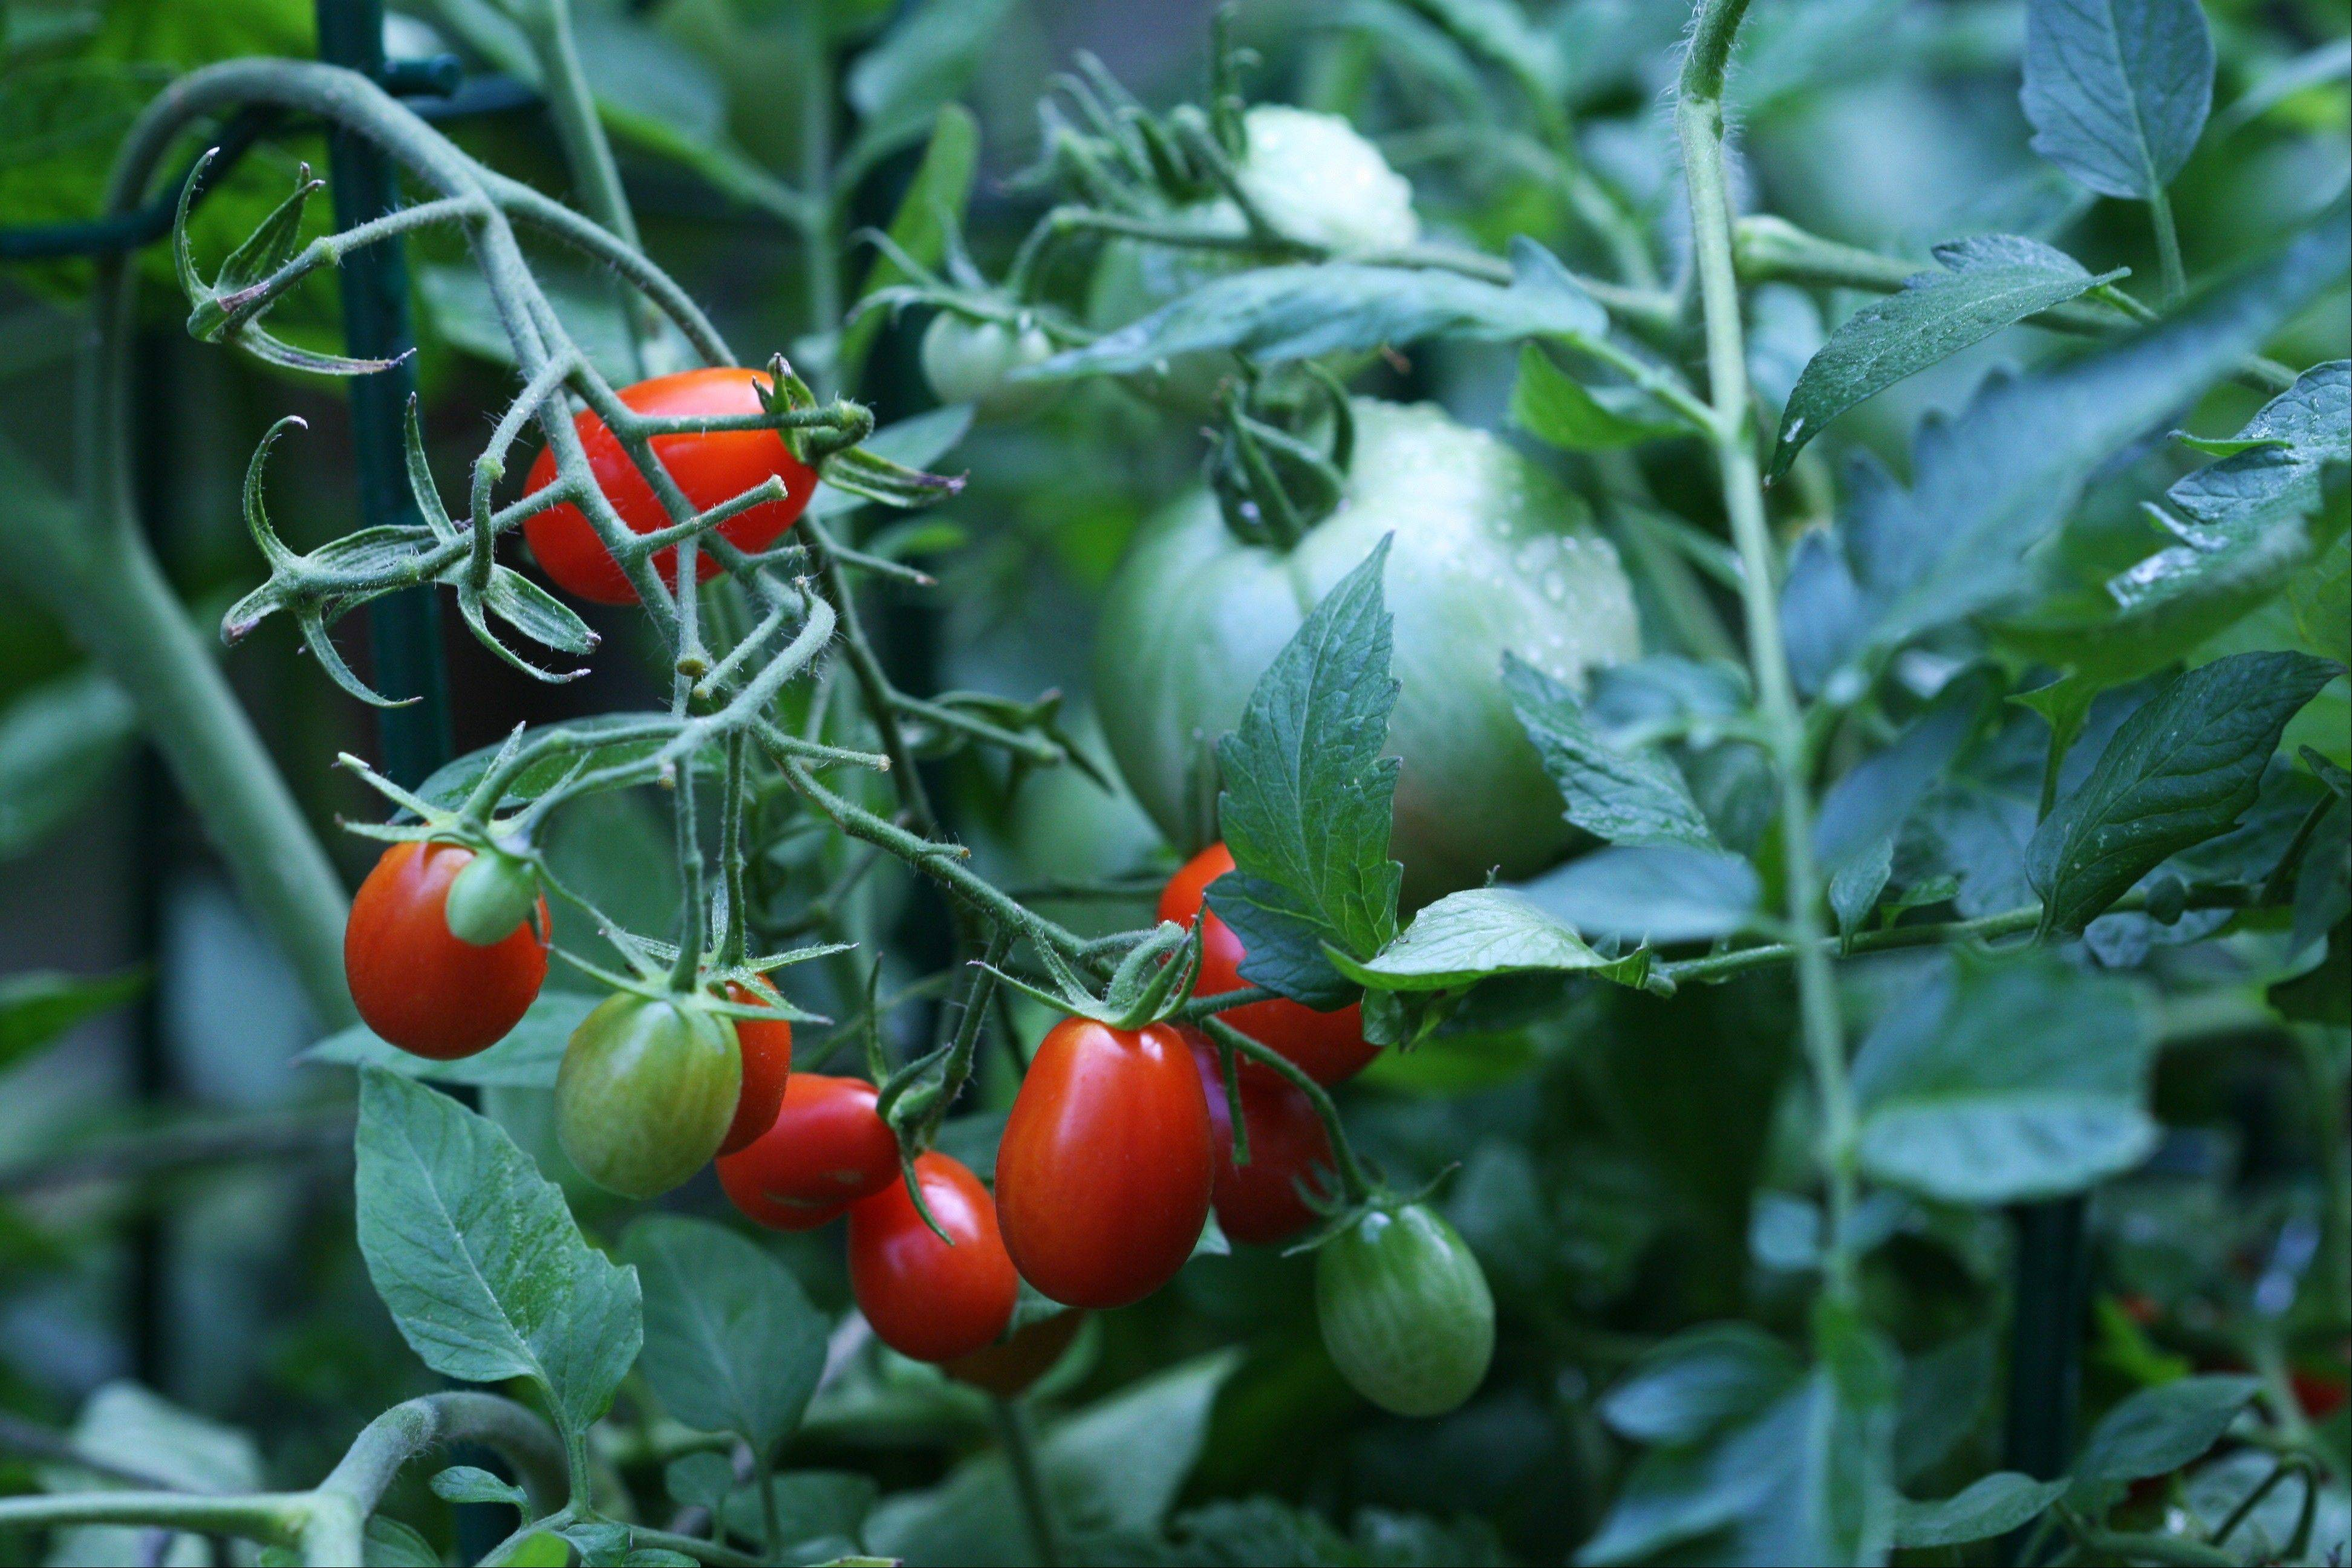 Tomatoes are tender plants, susceptible to damage from frost. Like most warm-season crops, they can be started indoors or protected by such season-extending tools as cold frames, row covers or hoops until the threat of frigid weather has passed. Wait until soils have warmed to at least 55 or 60 degrees before transplanting.